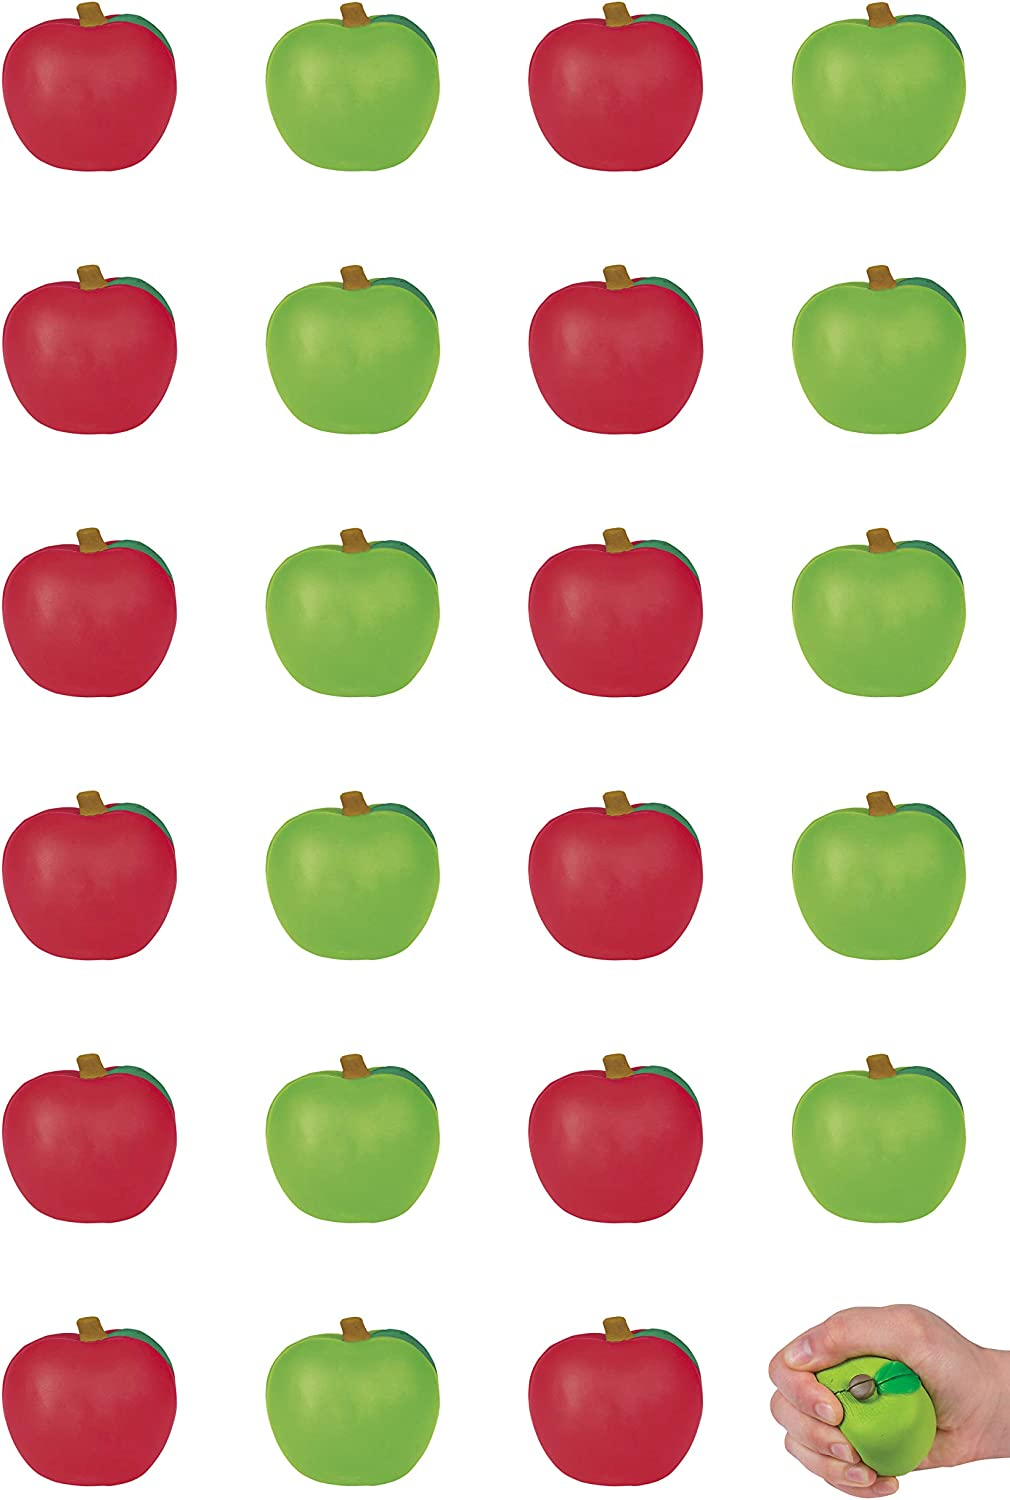 Apple Stress Toys, Red and Green Apple-Shaped Stress Relief Balls (24 Assorted Pieces)